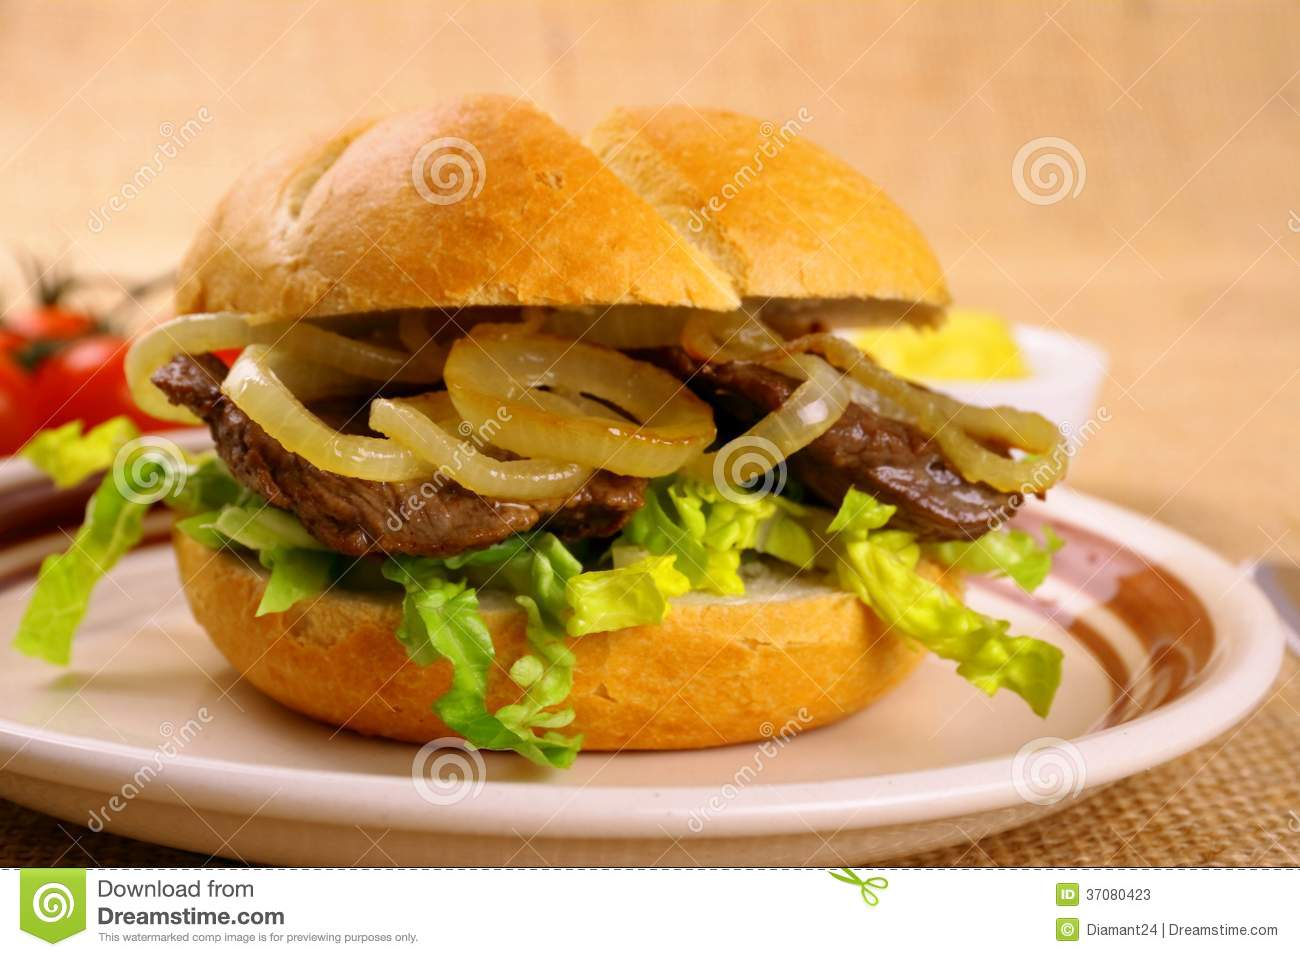 ochsen semmel grilled beef with onion rings in bun stock photos image 37080423. Black Bedroom Furniture Sets. Home Design Ideas